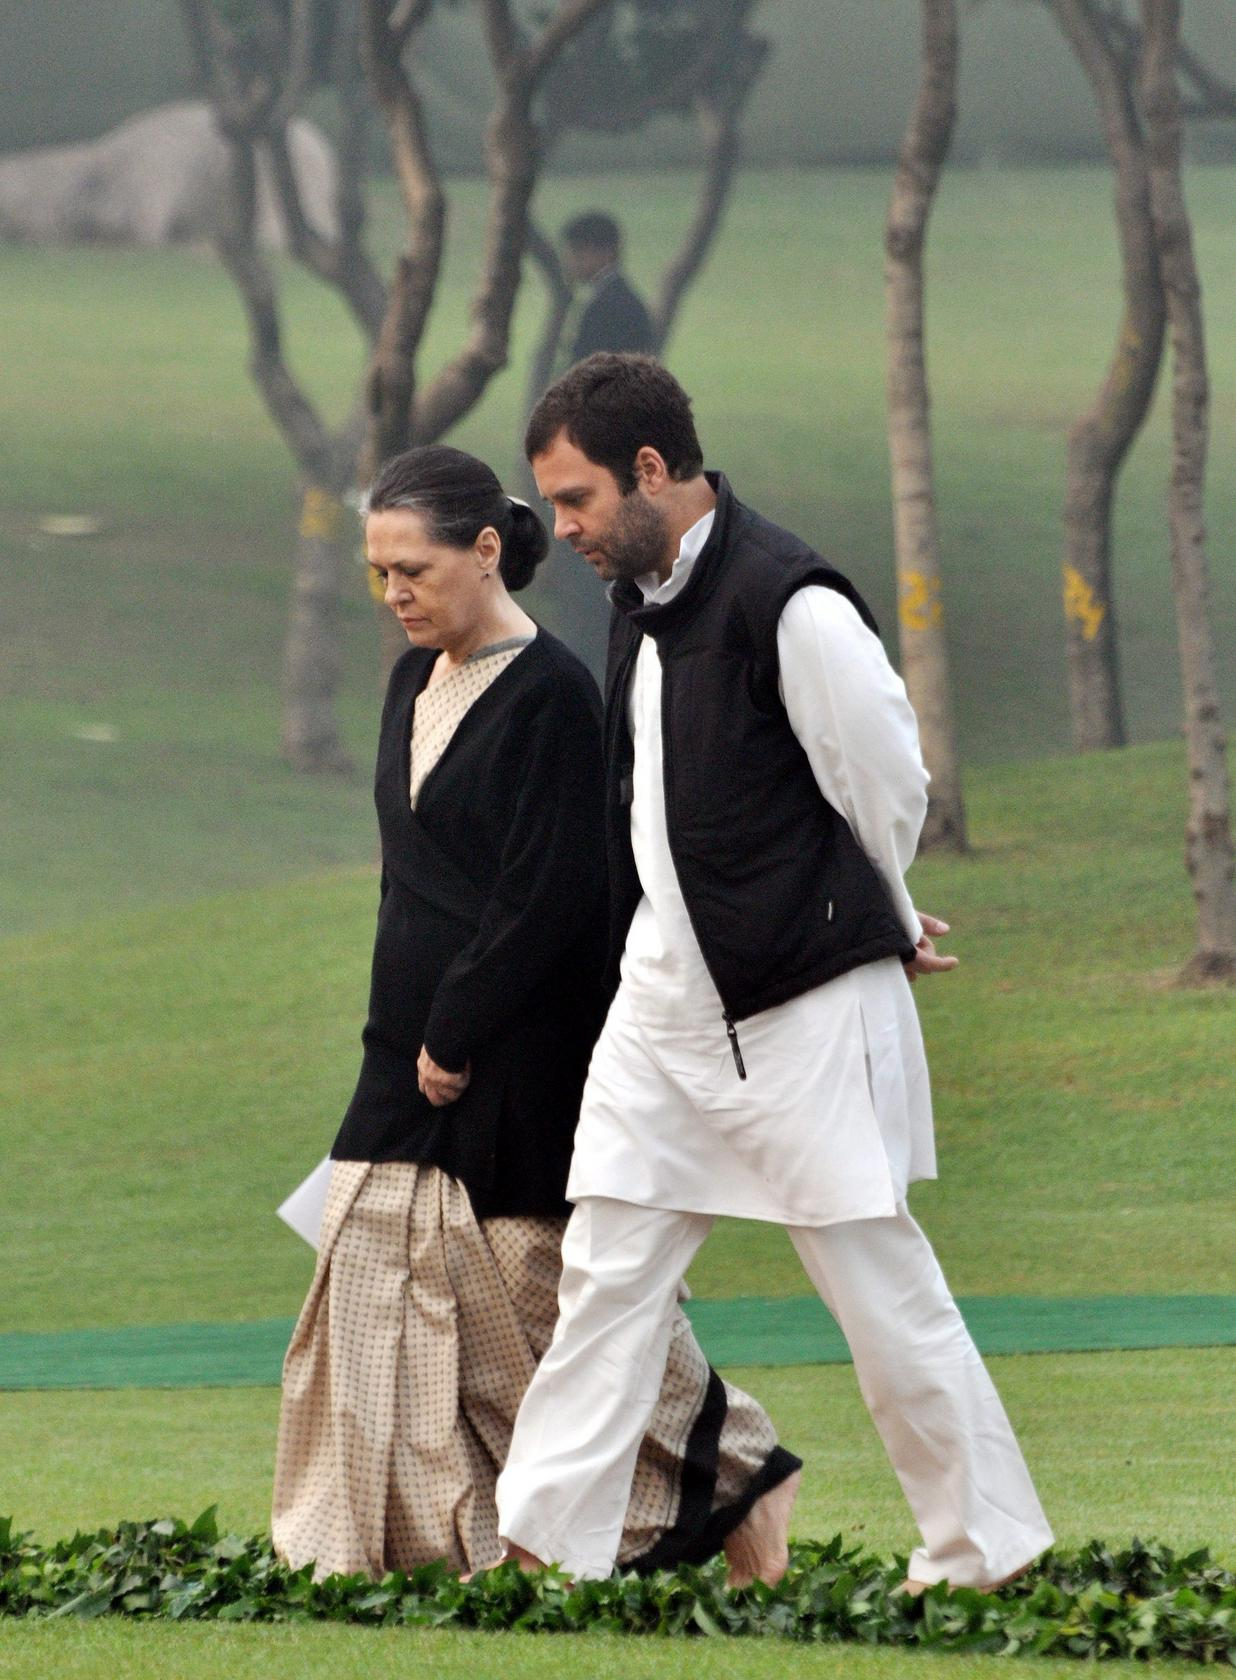 india 39 s political dynasty flounders 30 years after indira. Black Bedroom Furniture Sets. Home Design Ideas